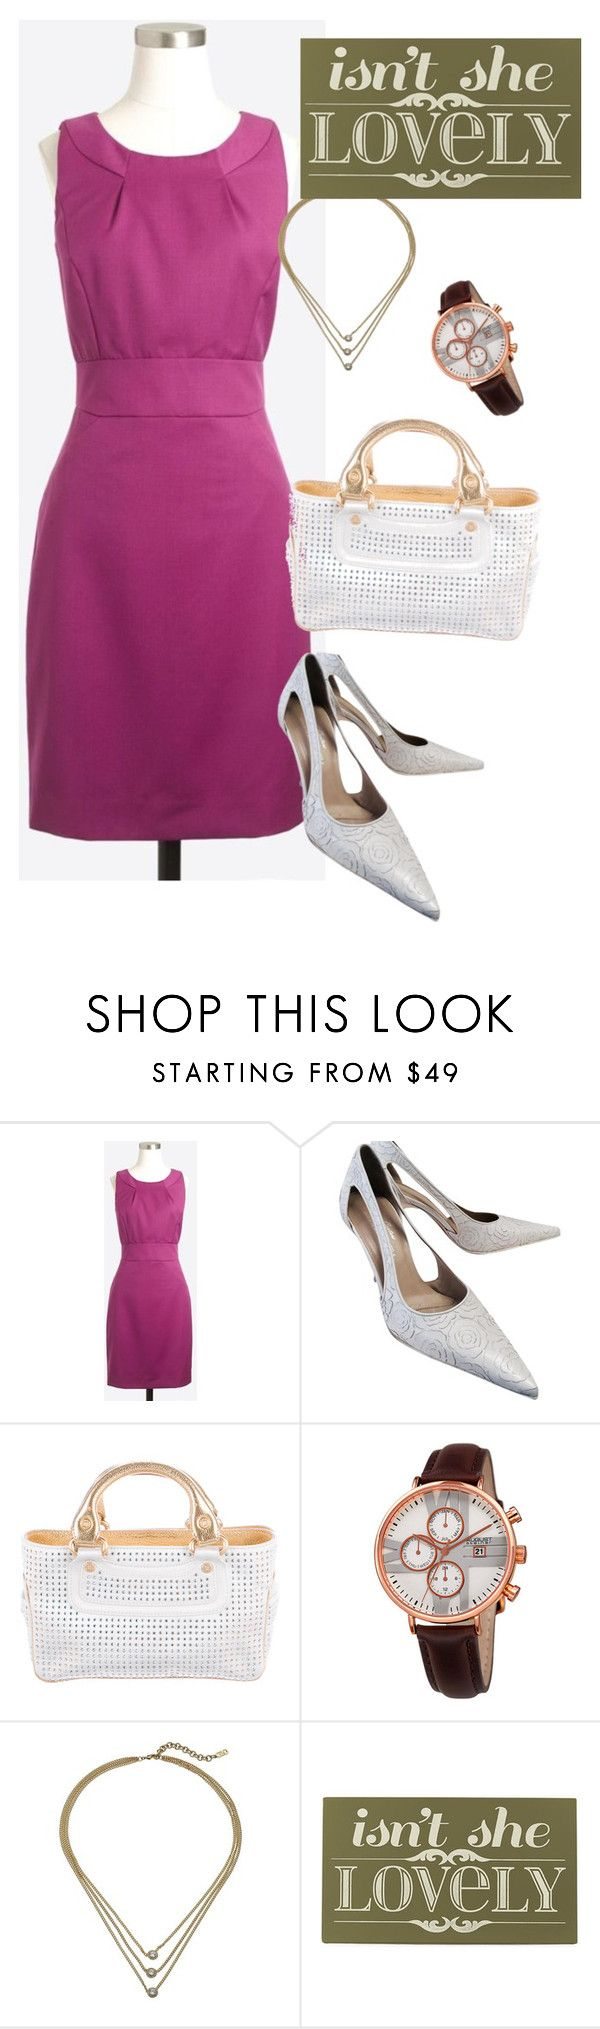 """""""dress"""" by masayuki4499 ❤ liked on Polyvore featuring J.Crew, Donald J Pliner, CÉLINE, August Steiner, Cole Haan and Home Decorators Collection"""